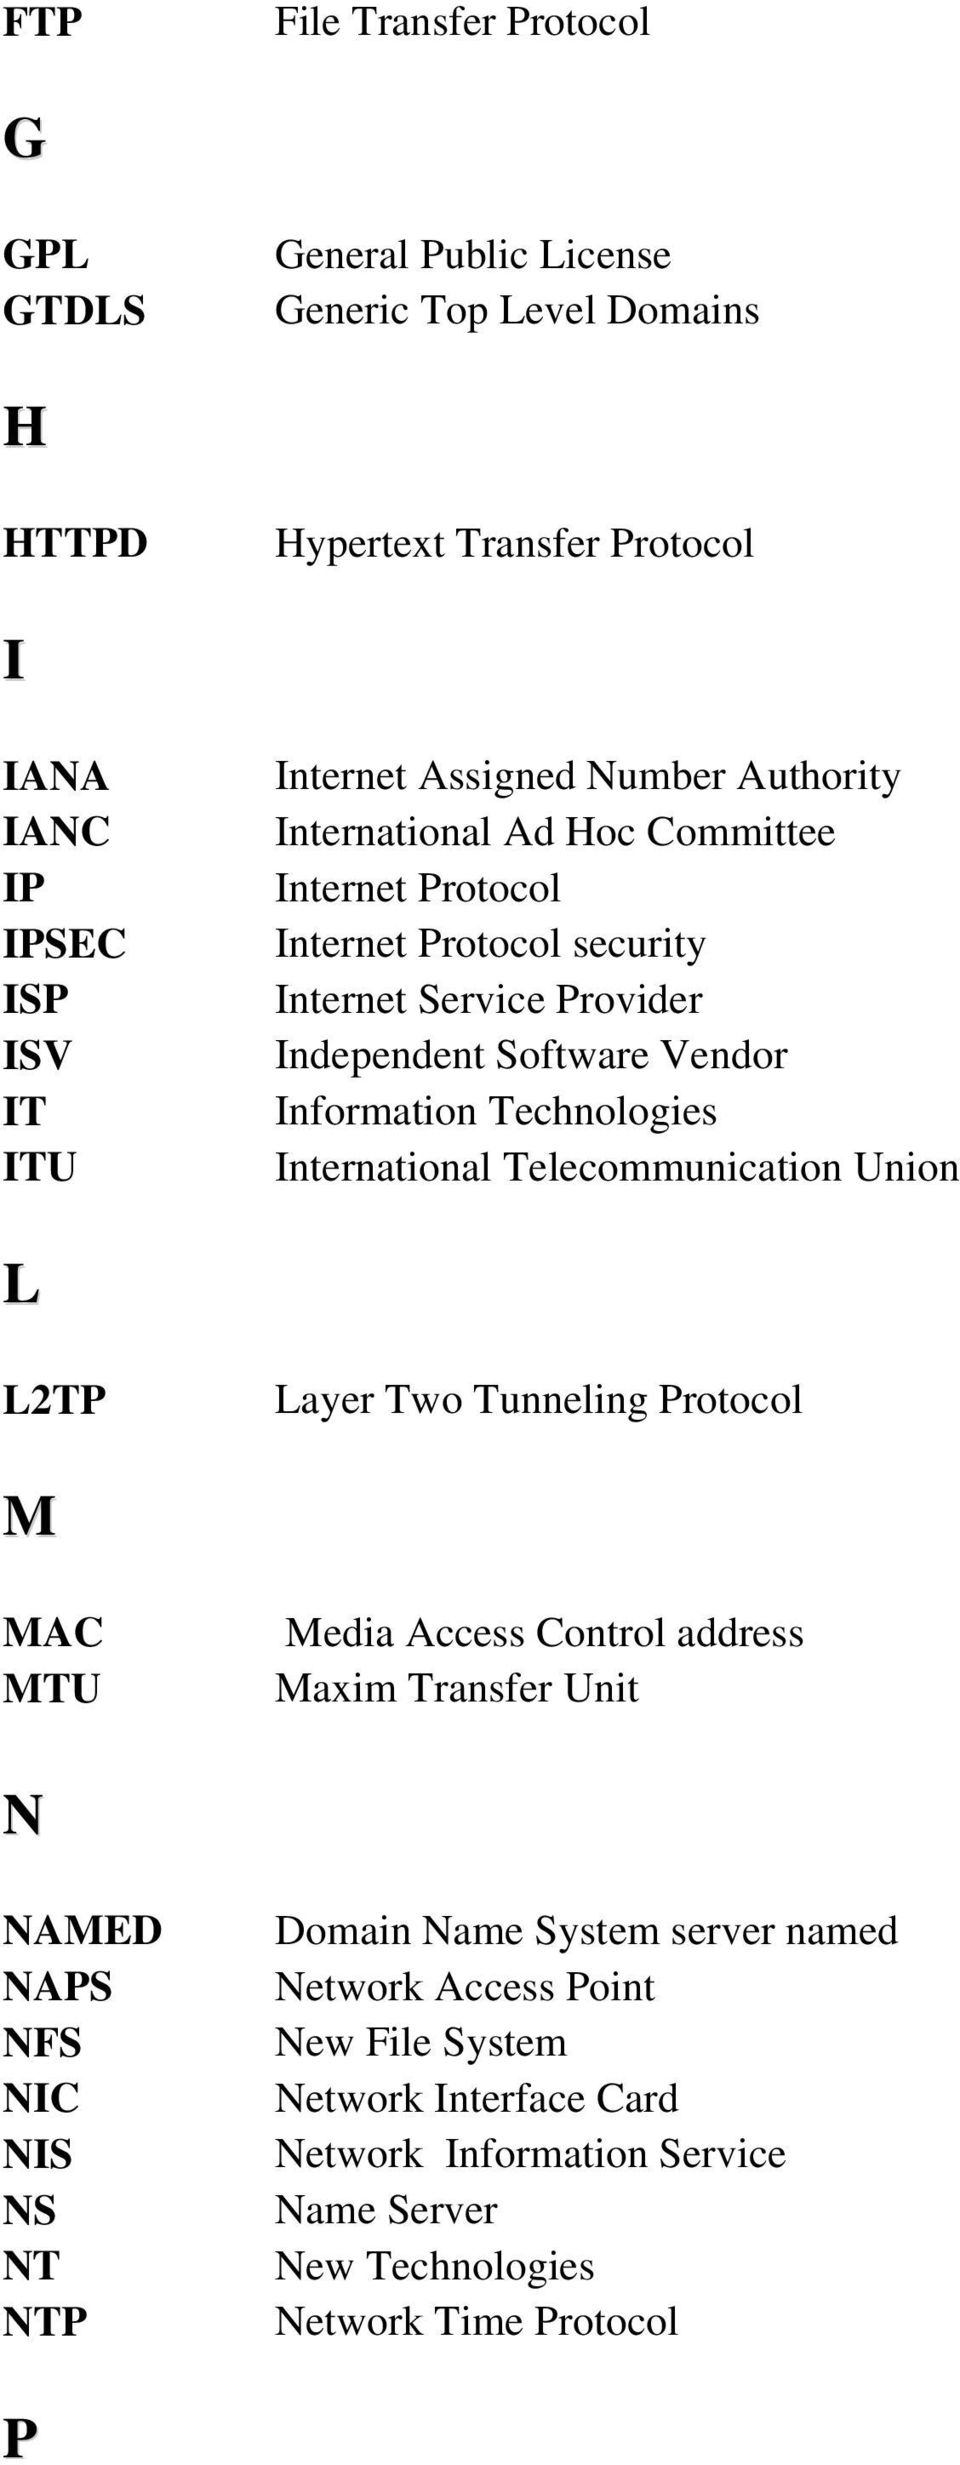 Technologies International Telecommunication Union L L2TP Layer Two Tunneling Protocol M MAC MTU Media Access Control address Maxim Transfer Unit N NAMED NAPS NFS NIC NIS